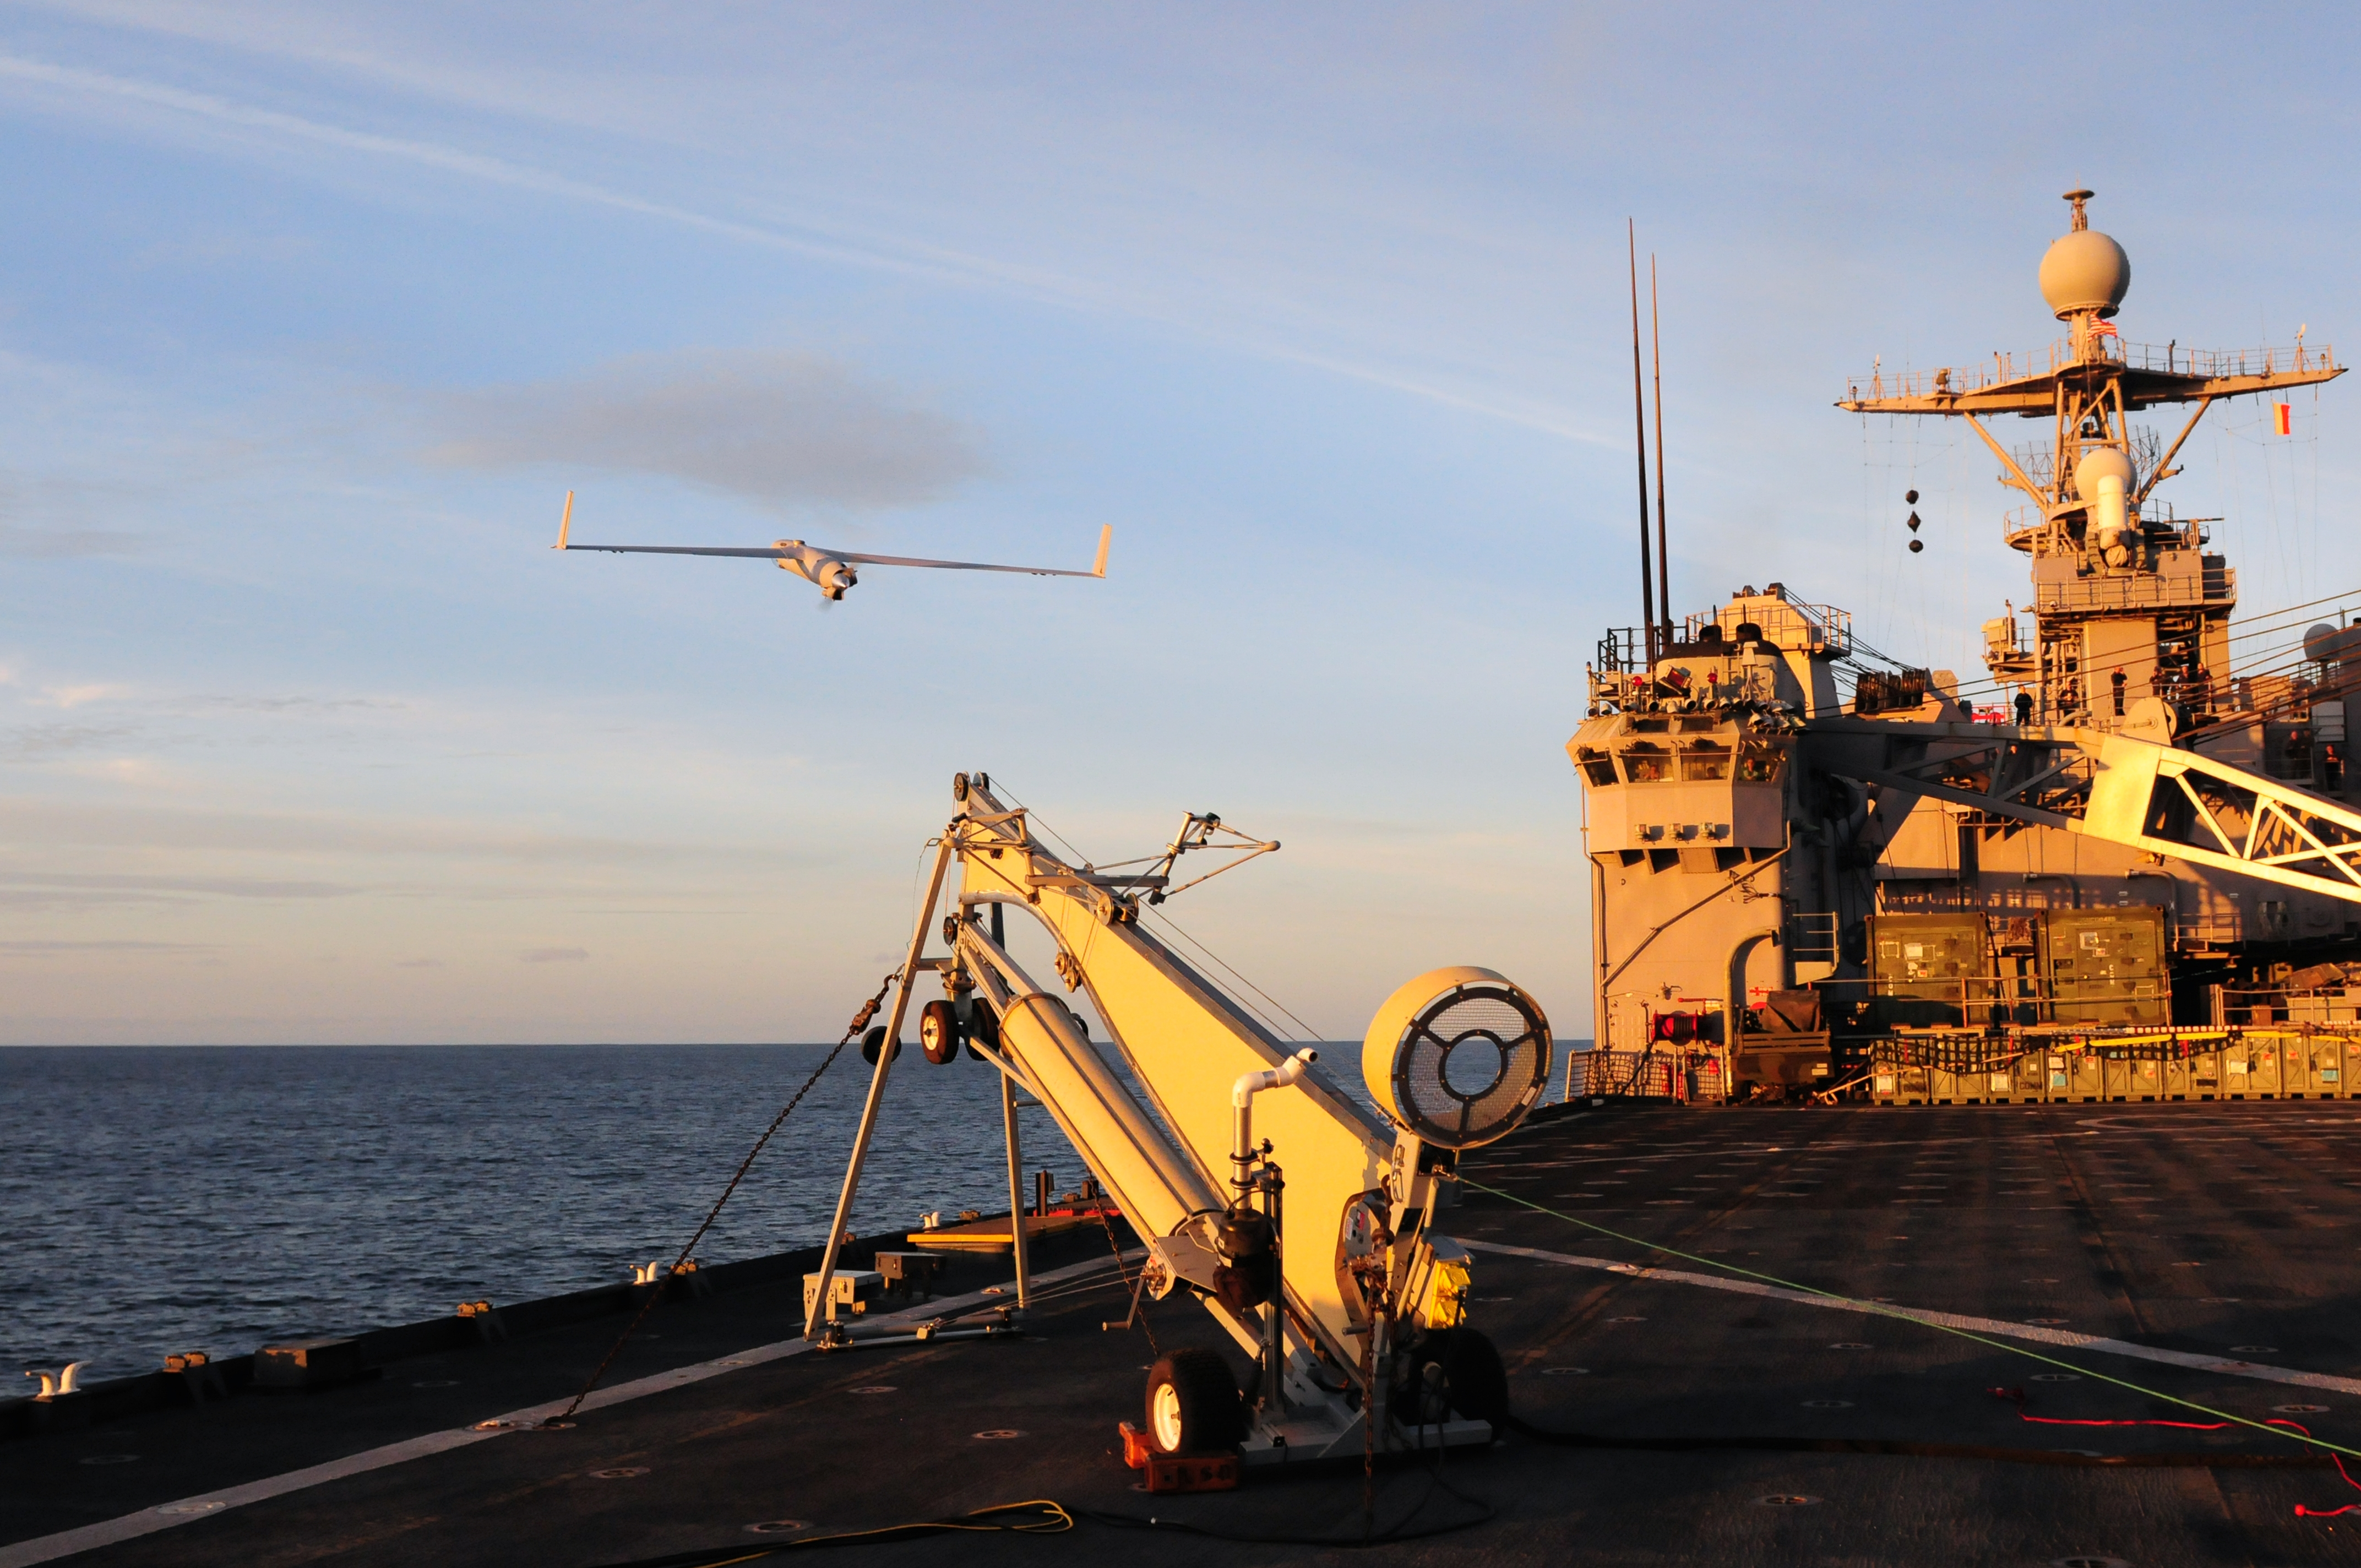 The ScanEagle is launched autonomously via a pneumatic catapult